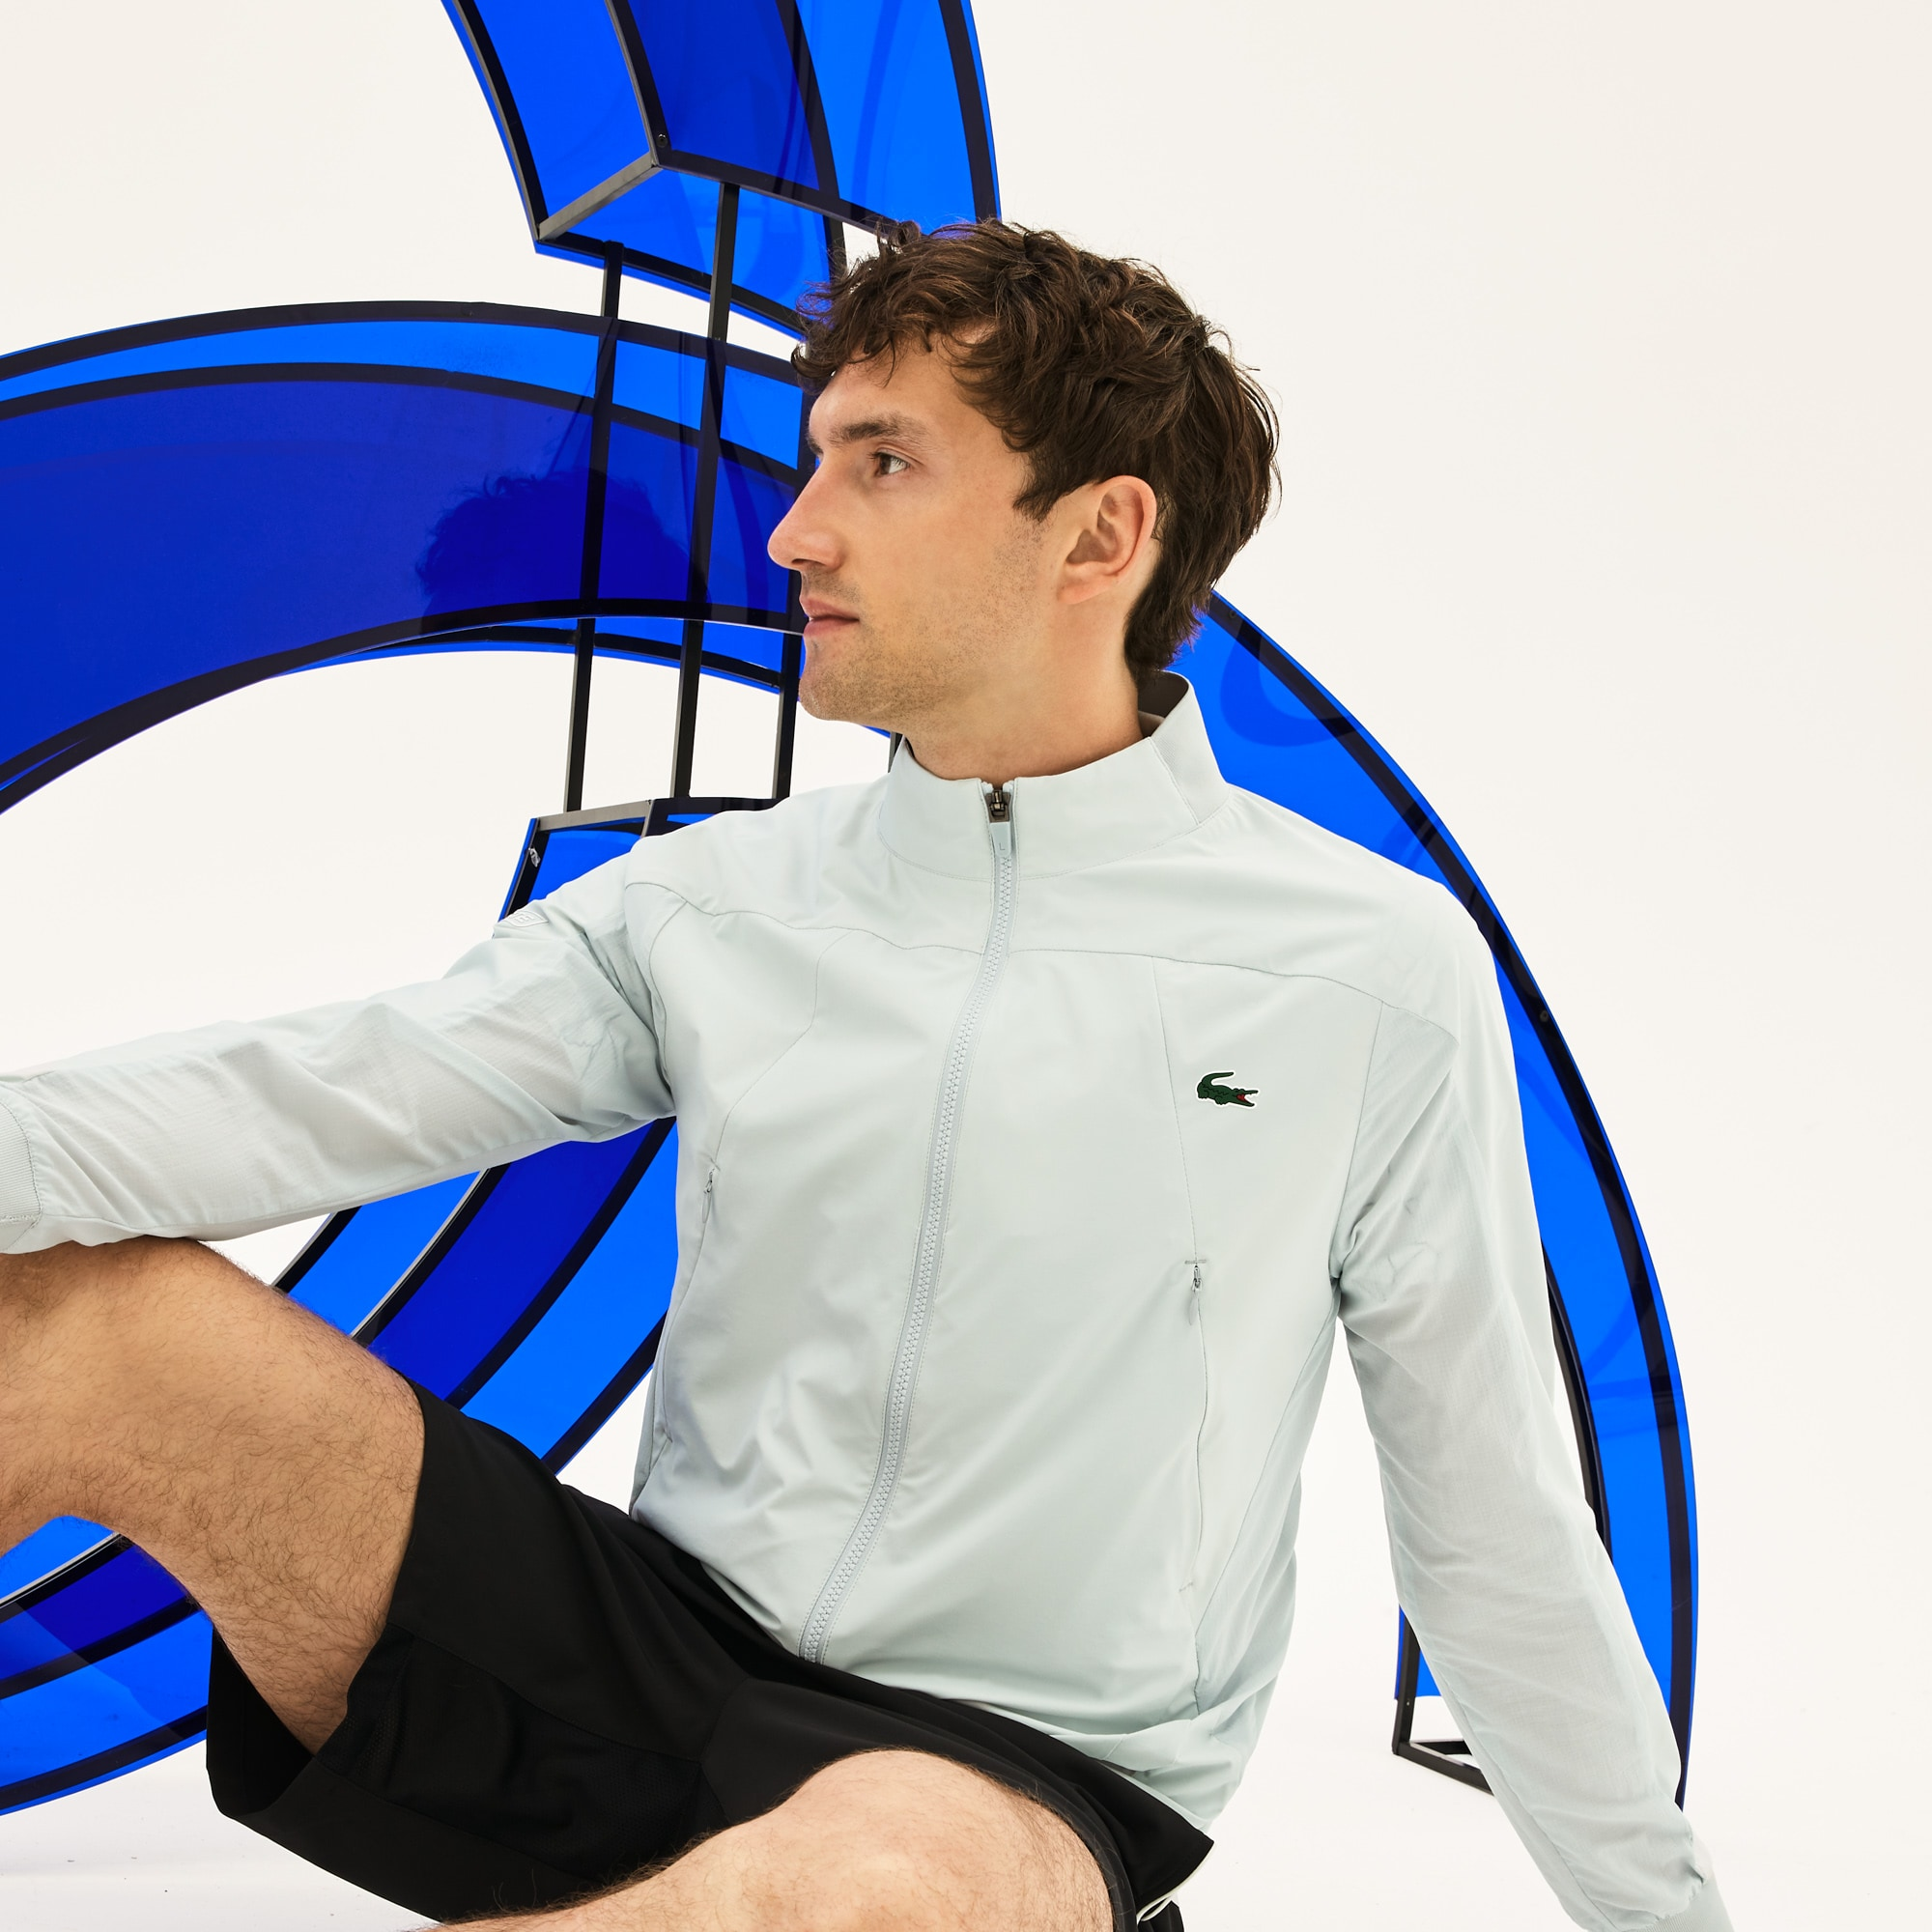 Men's SPORT Stand-Up Collar Taffeta Jacket -  x Novak Djokovic Support With Style - Off Court Collection